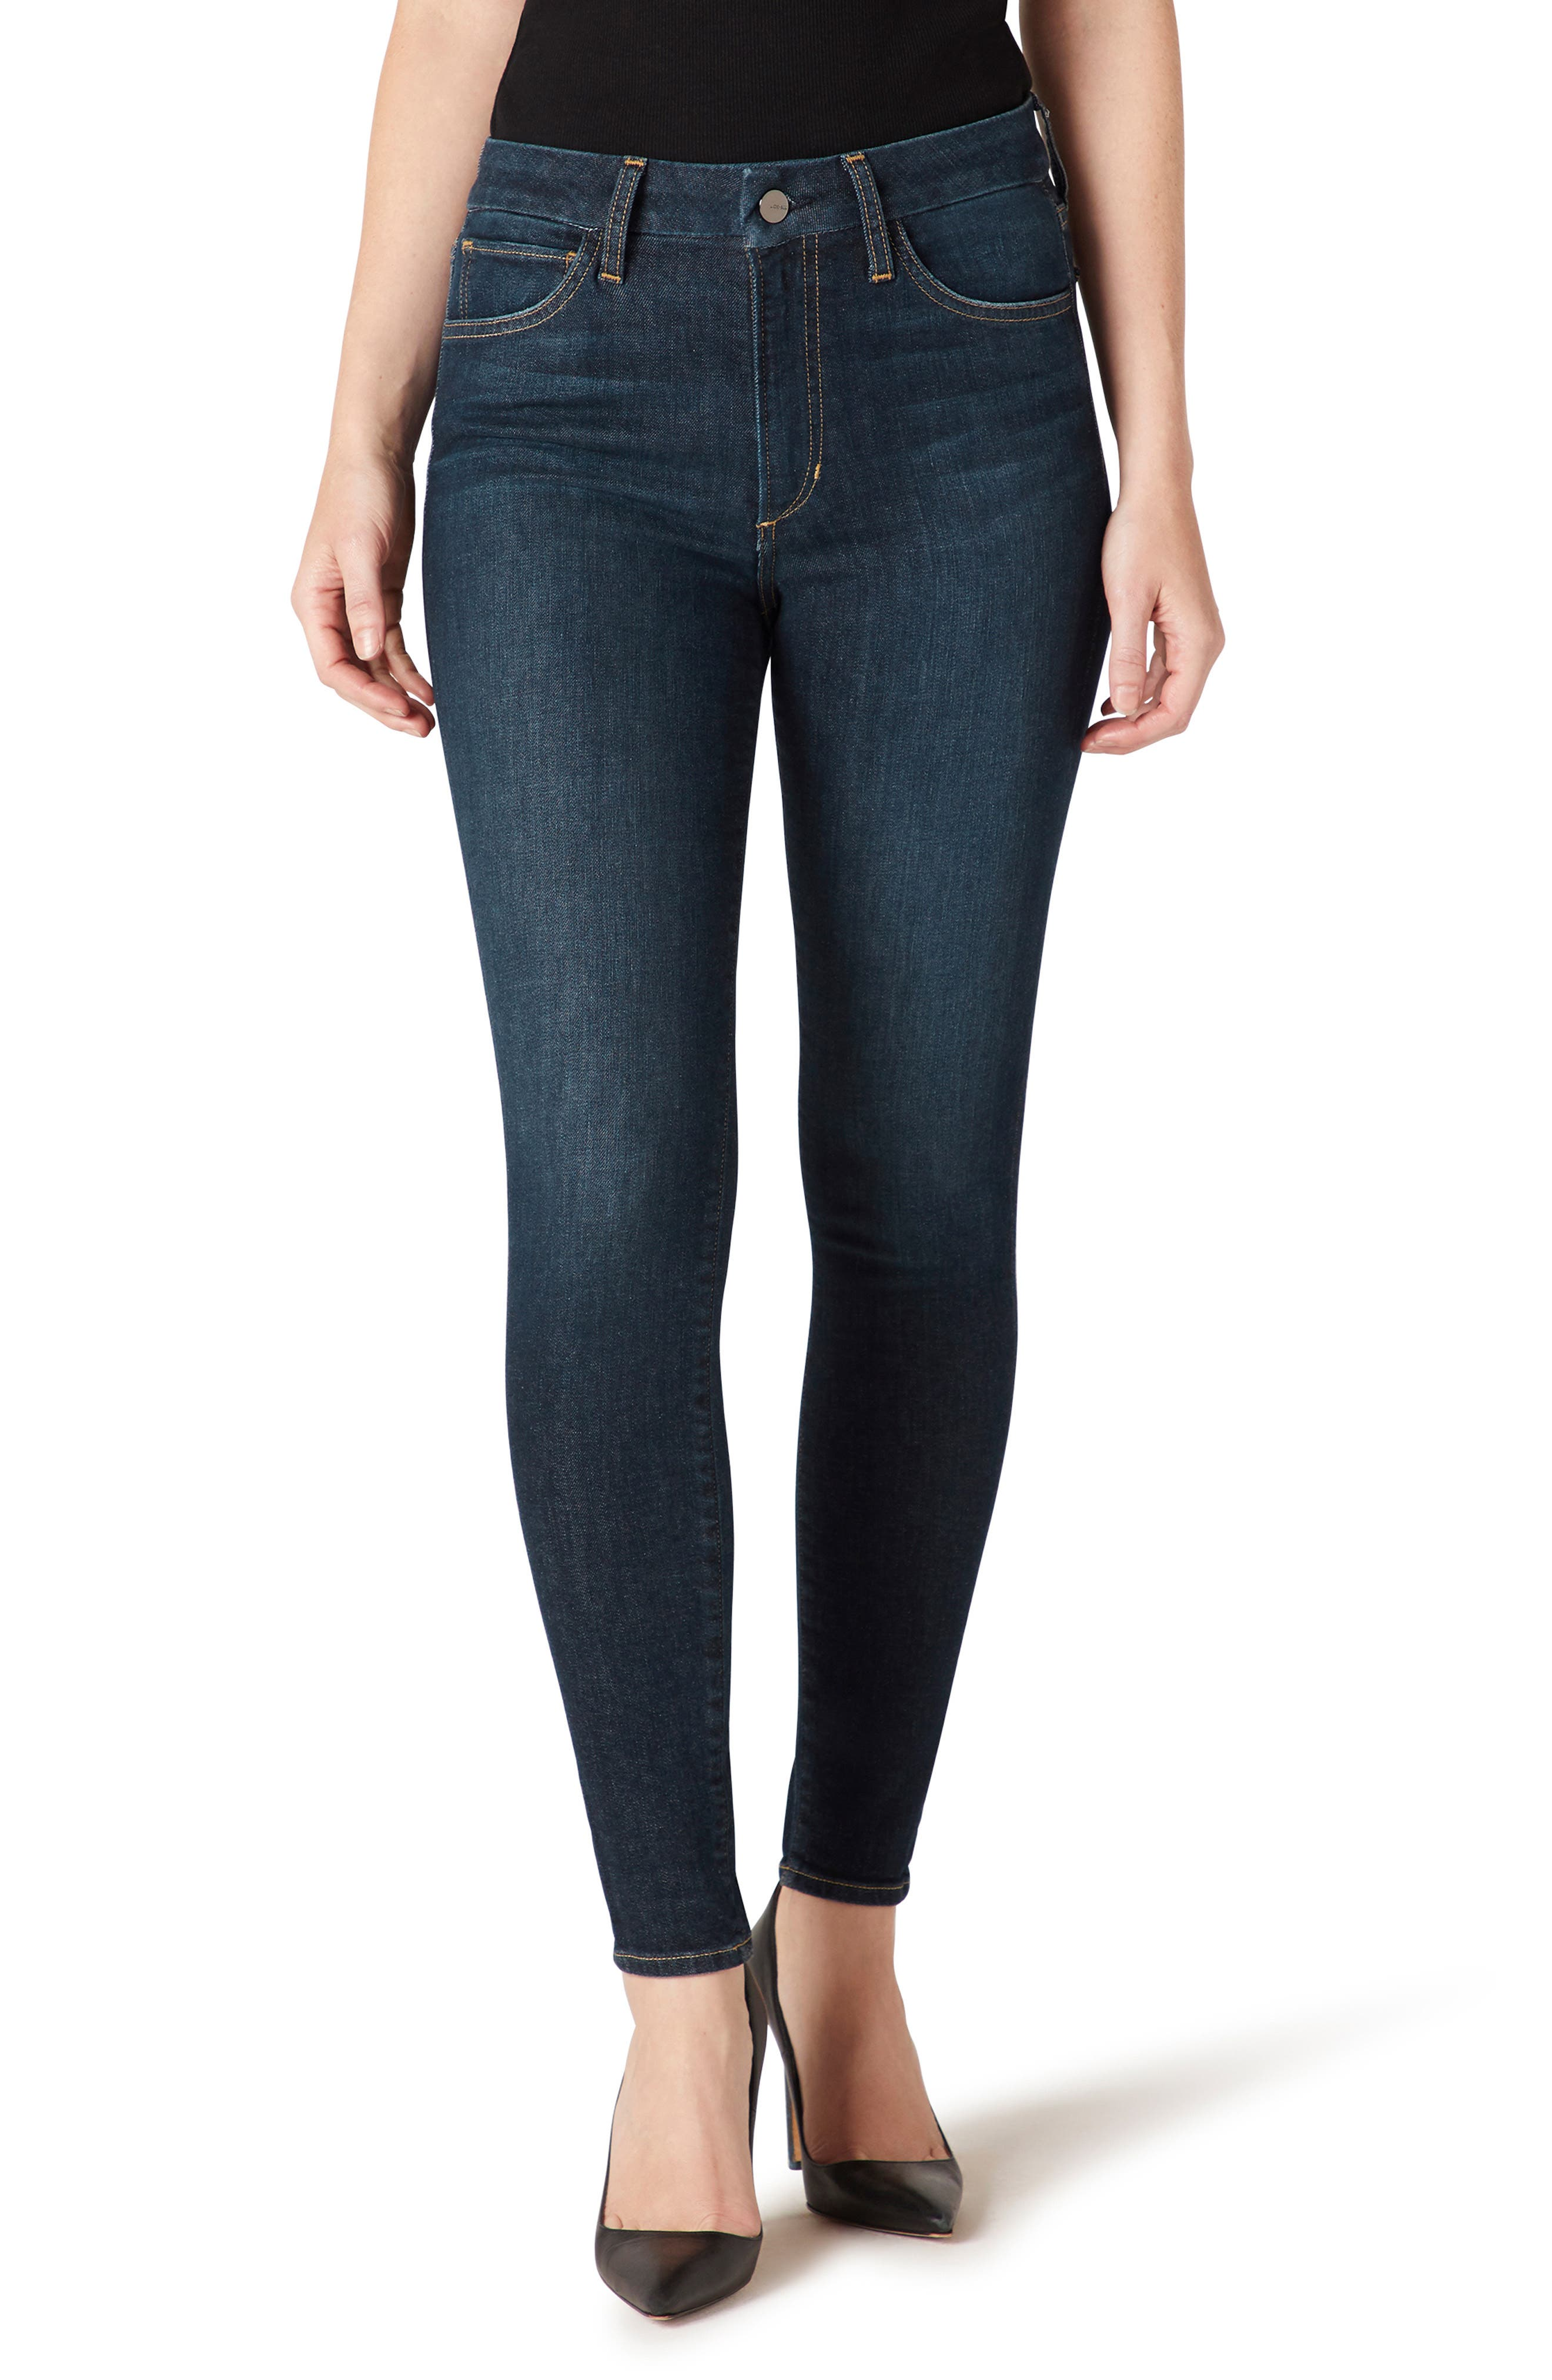 Polished skinny jeans in a deep, dark wash are sanded and whiskered ever so softly to give them a touch of preworn vintage vibes. Classic golden topstitching completes the look. Style Name: Joe\\\'s Hi Honey High Waist Ankle Skinny Jeans (Intrigue). Style Number: 6098221. Available in stores.